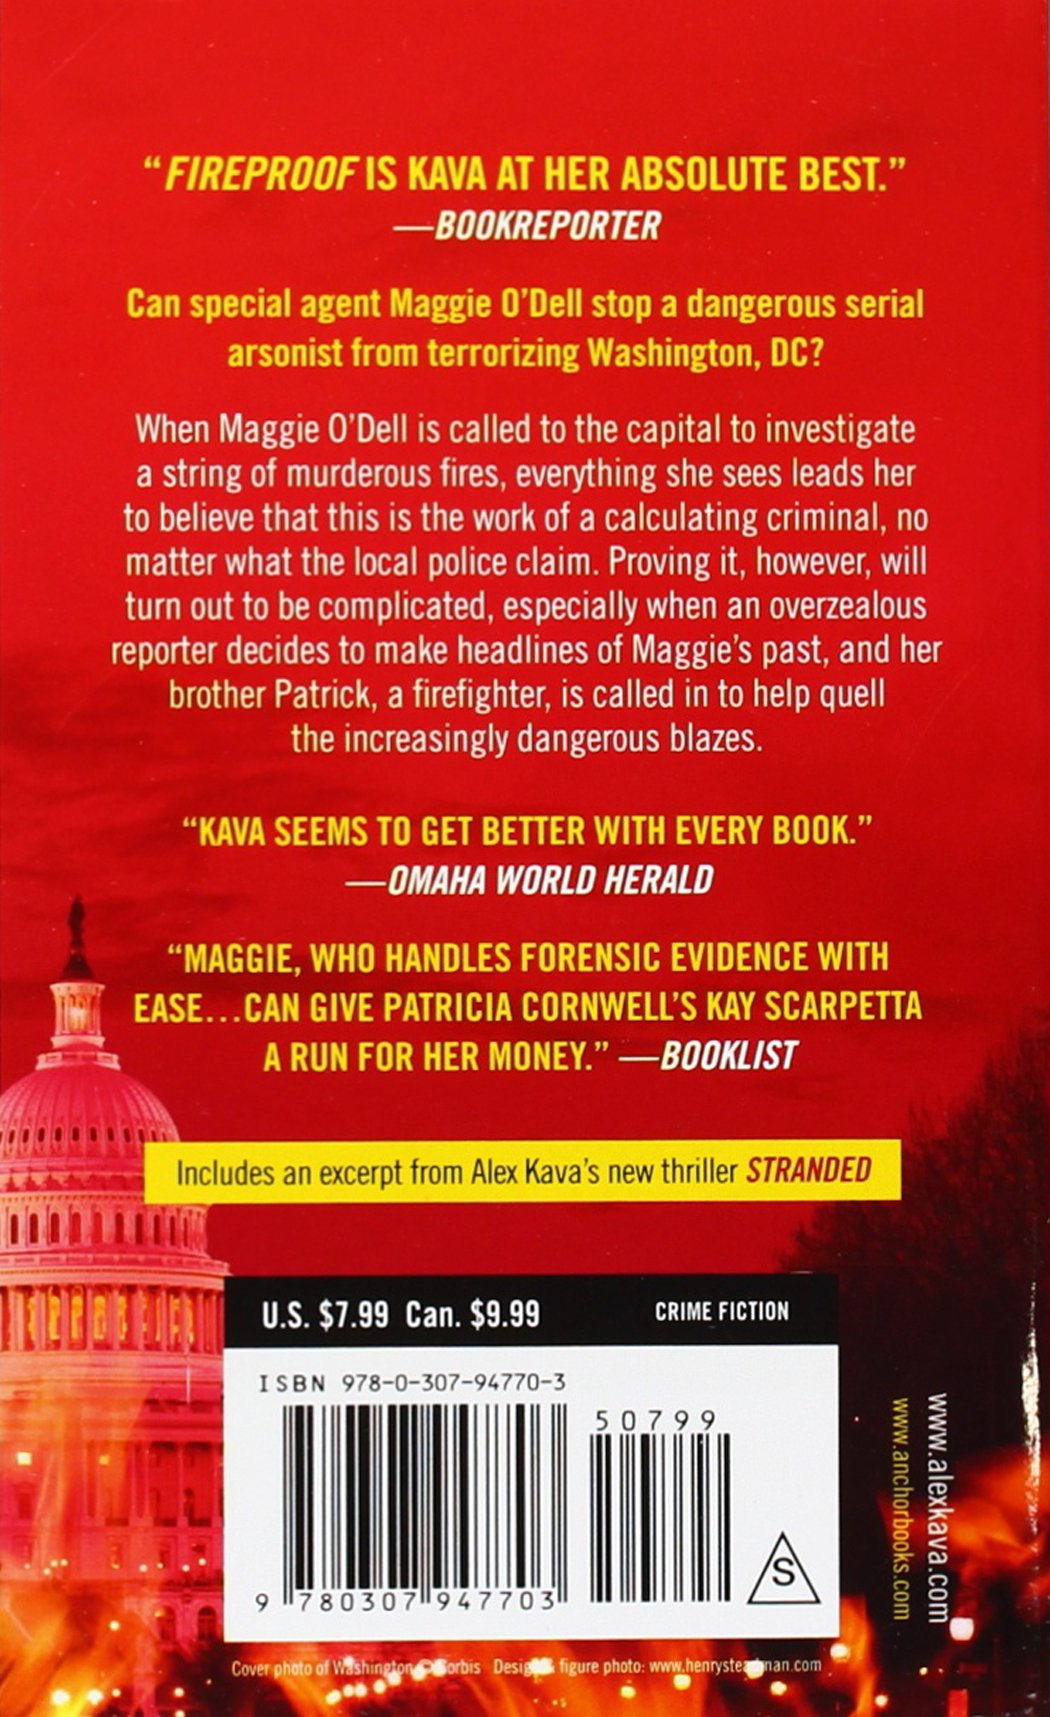 Fireproof: A Maggie O'dell Mystery: Alex Kava: 9780307947703: Amazon:  Books